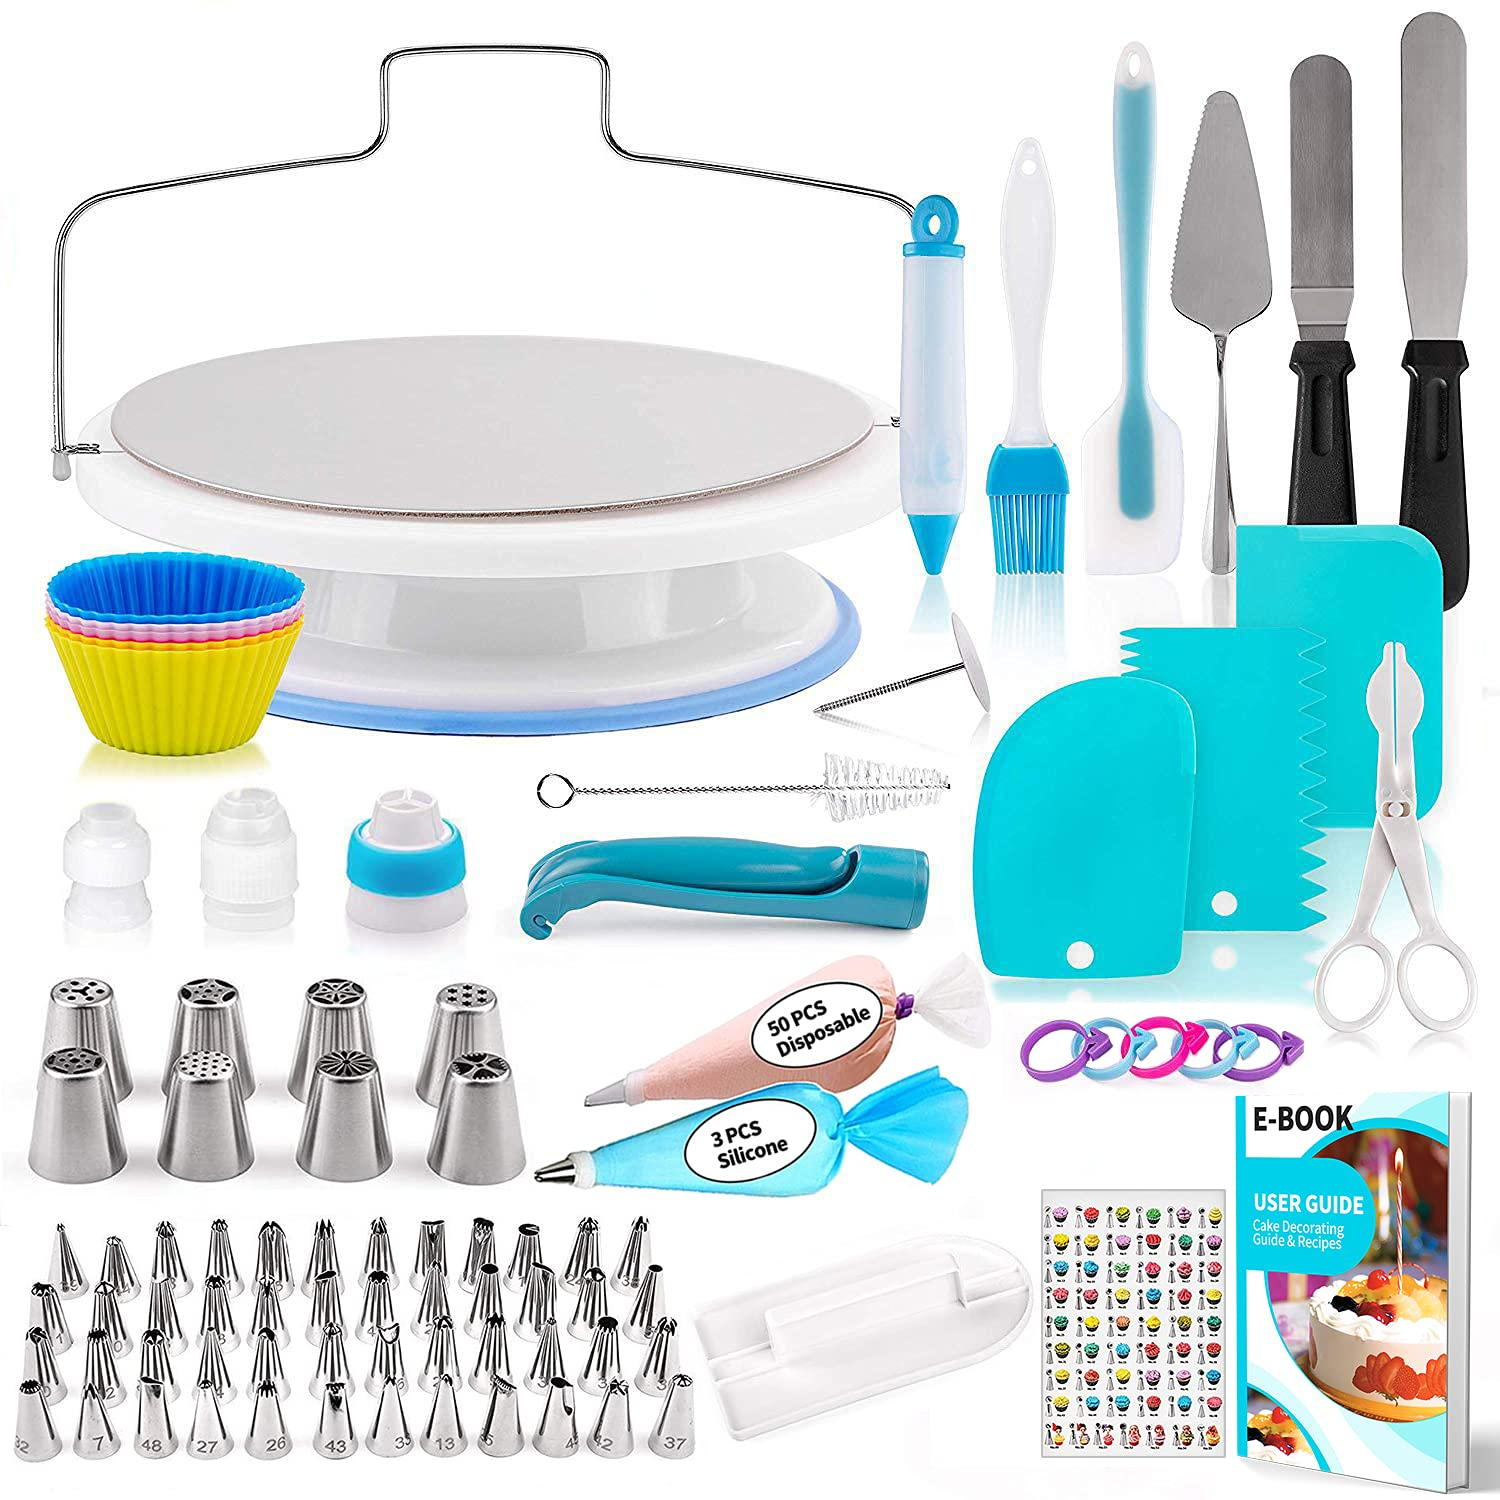 140 Pcs Cake Decorating Supplies Kit for Beginners with Cake Turntable Stand